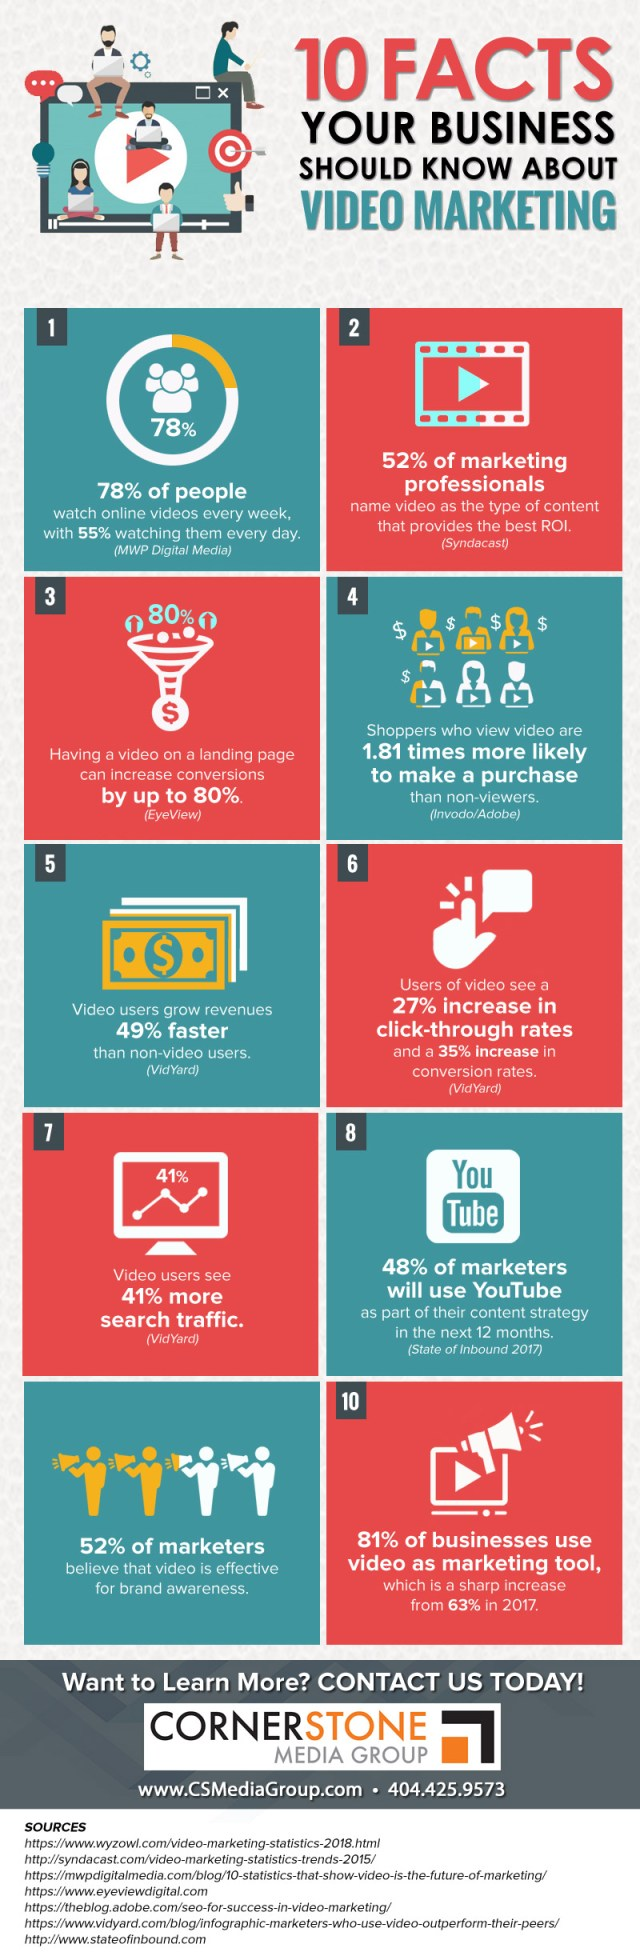 CMG 10 Video Facts You Business Needs To Know